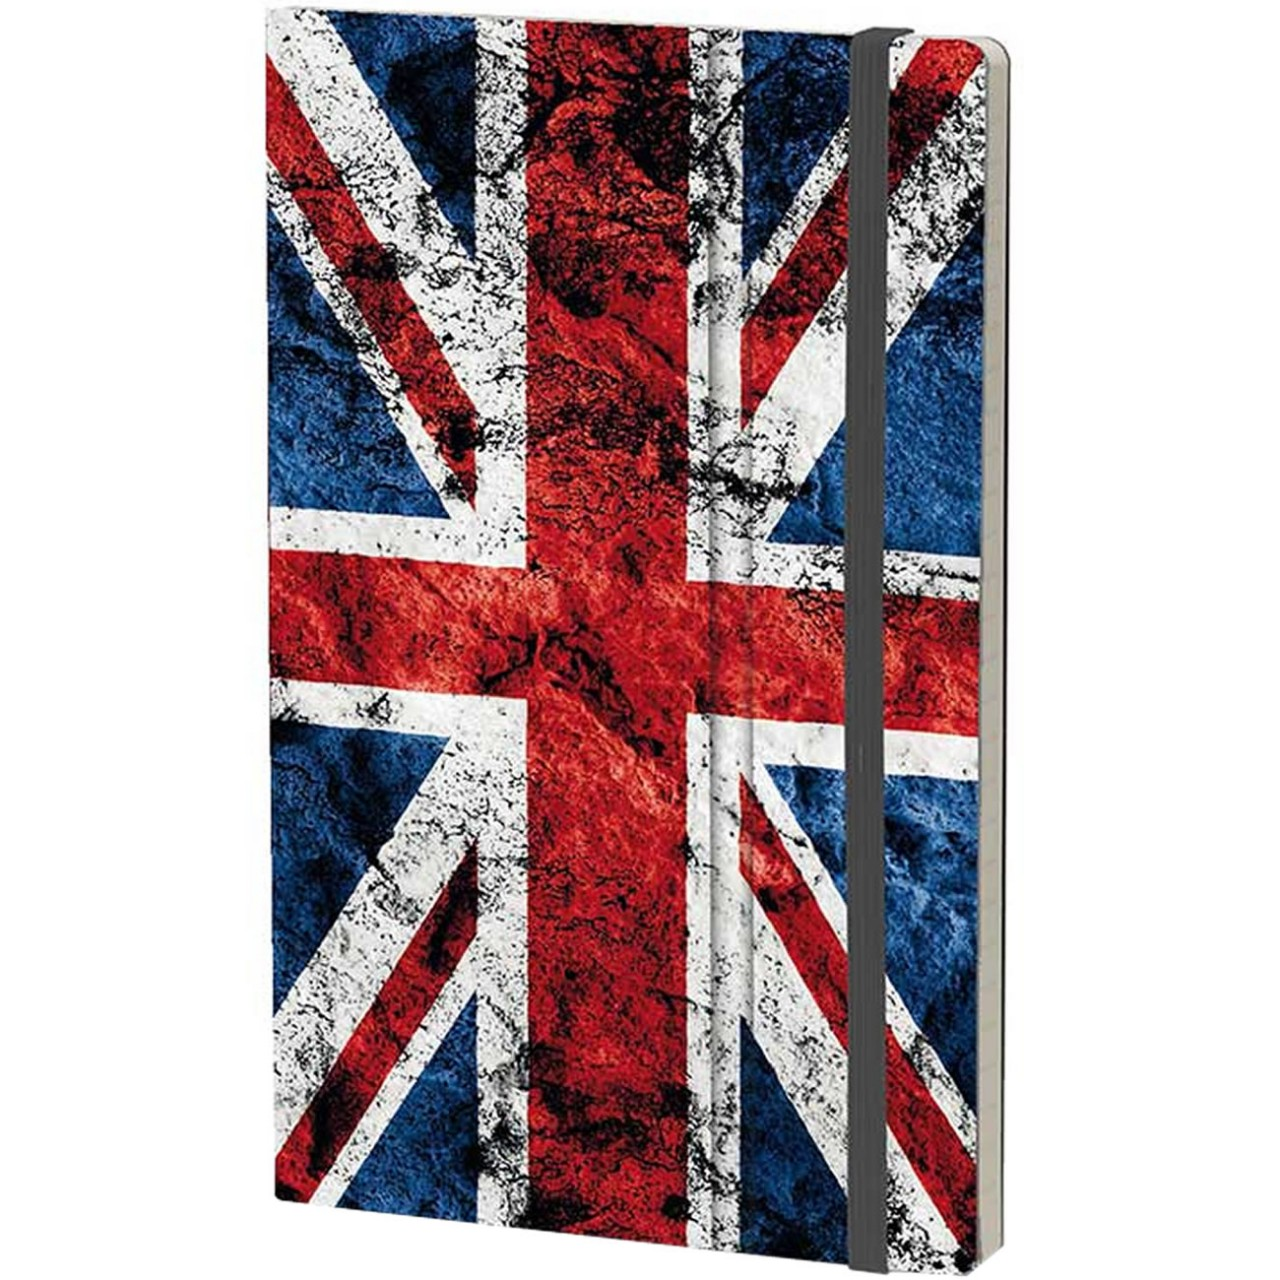 Stifflexible Notizbuch HISTORICAL NOTES 13 x 21 cm 192 S., GOD SAVE THE QUEEN (UK Flag)